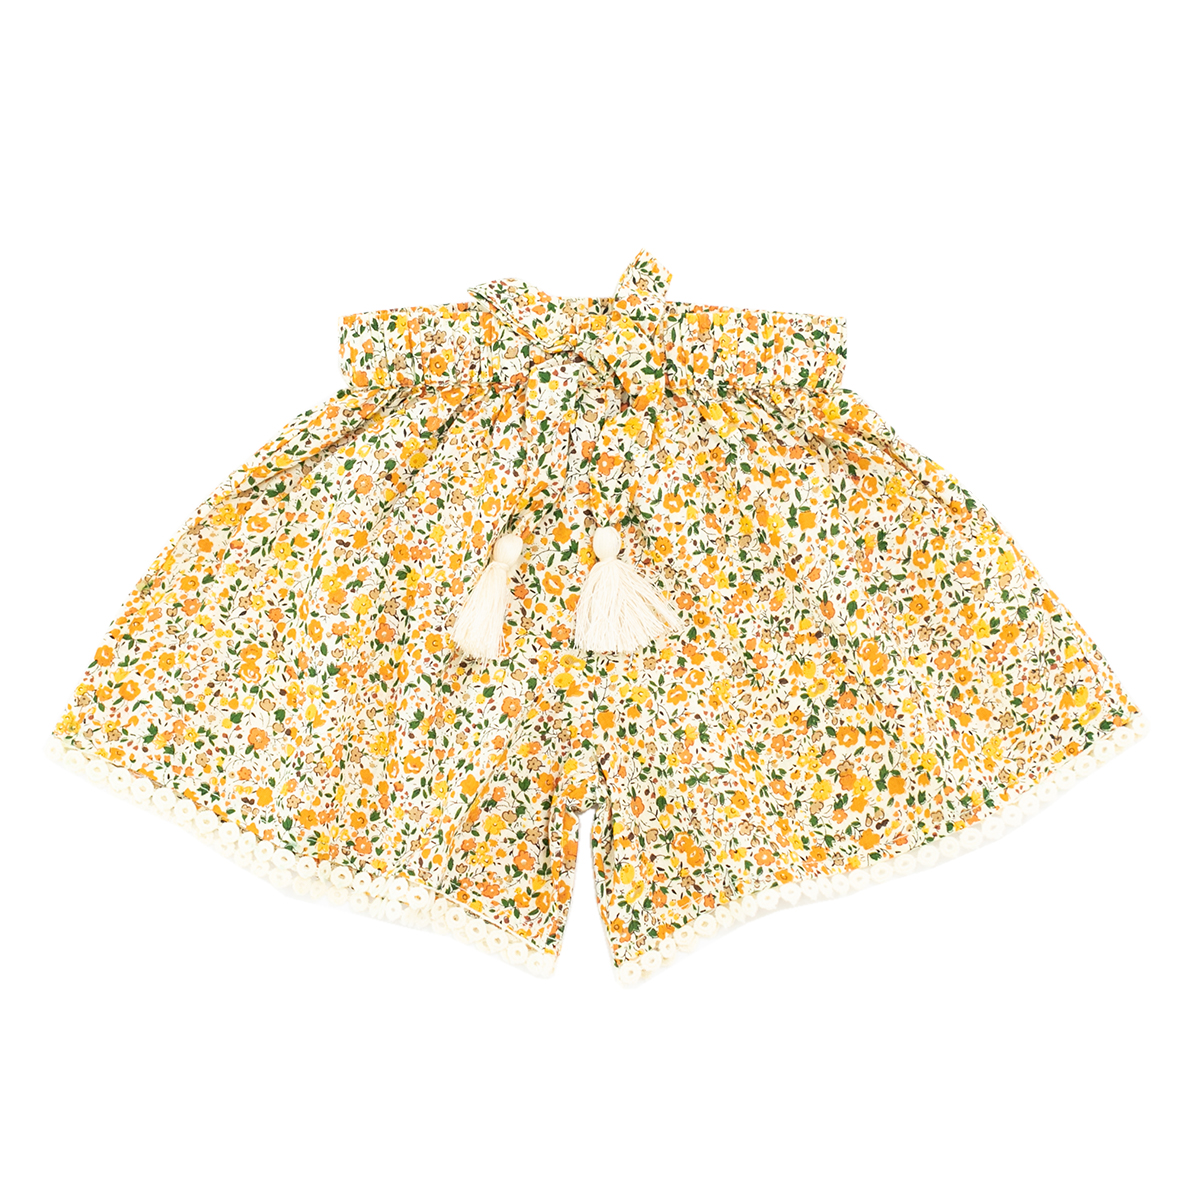 Madras Made Amber Shorts in Yellow Floral